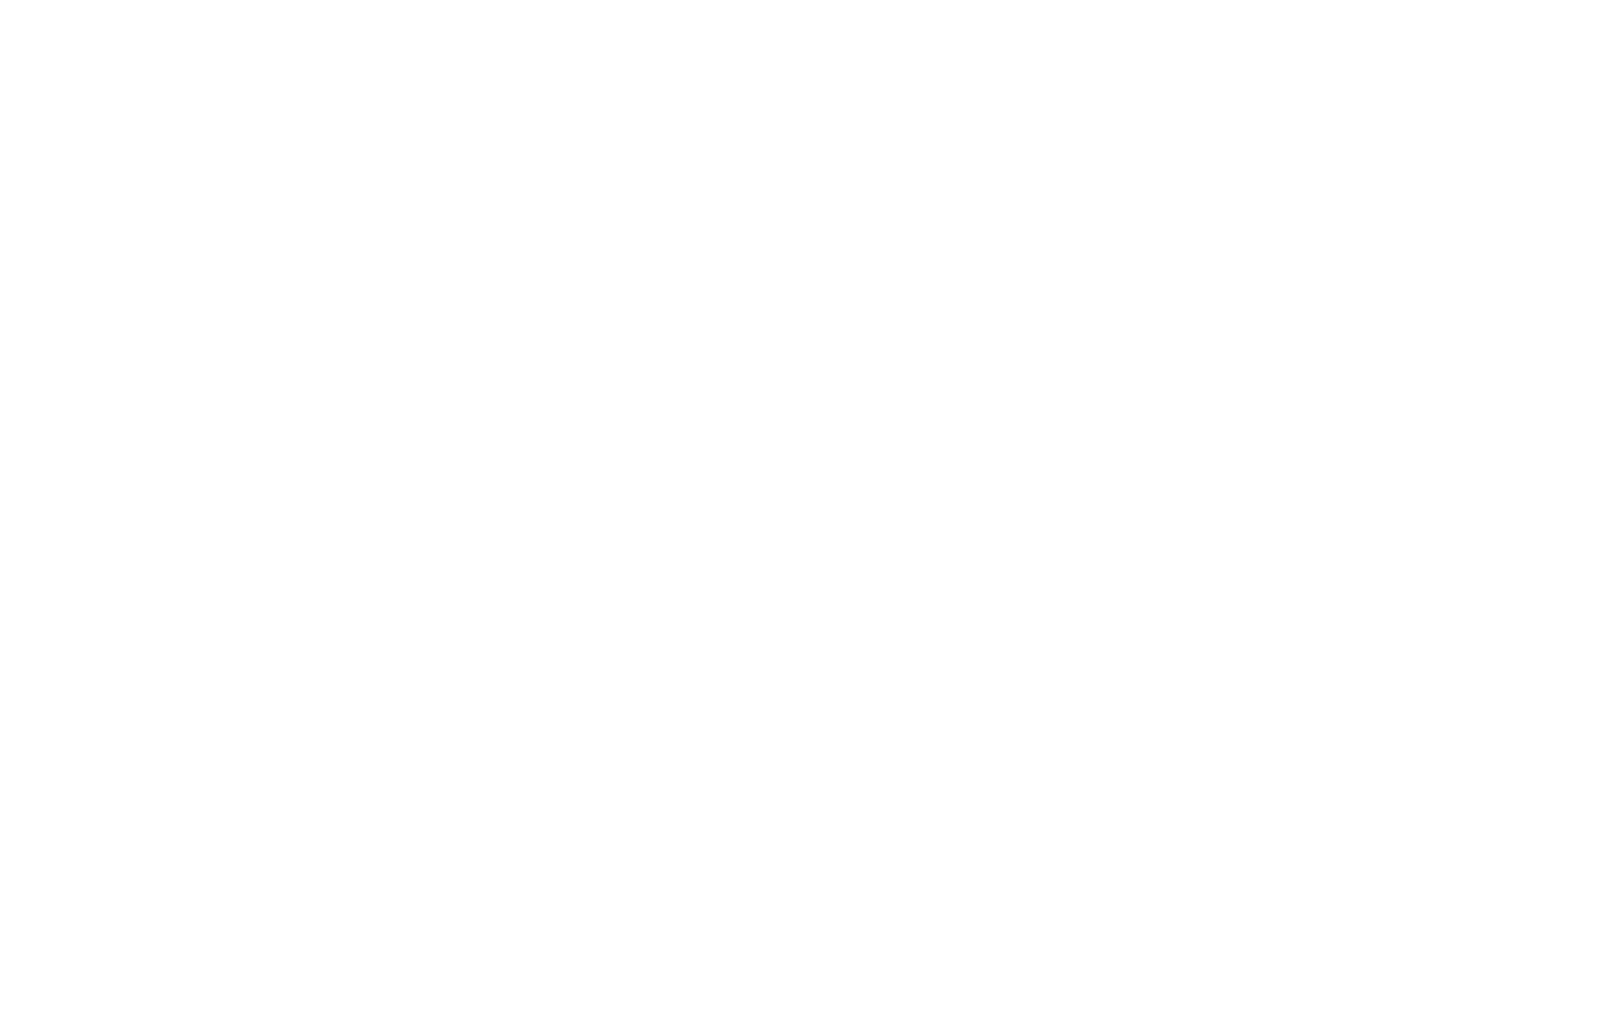 riskwell logo all white